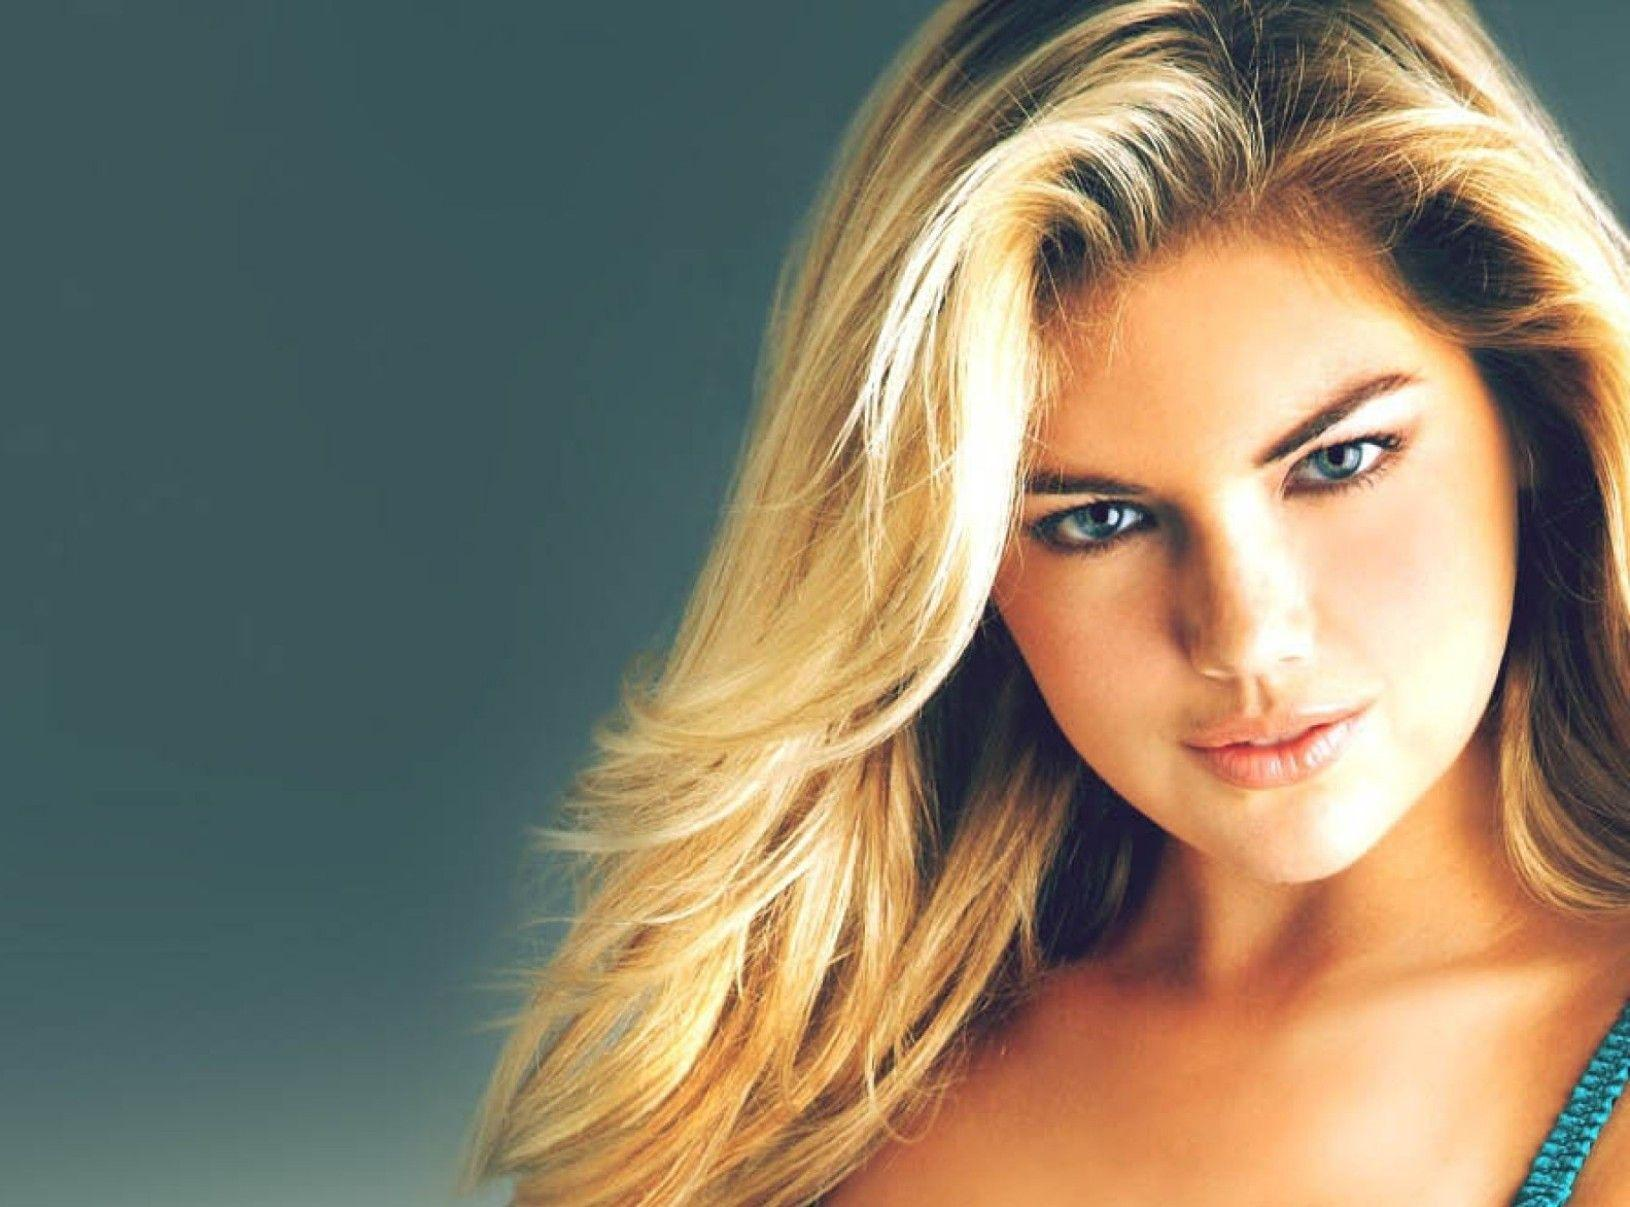 kate upton wallpapers with - photo #14